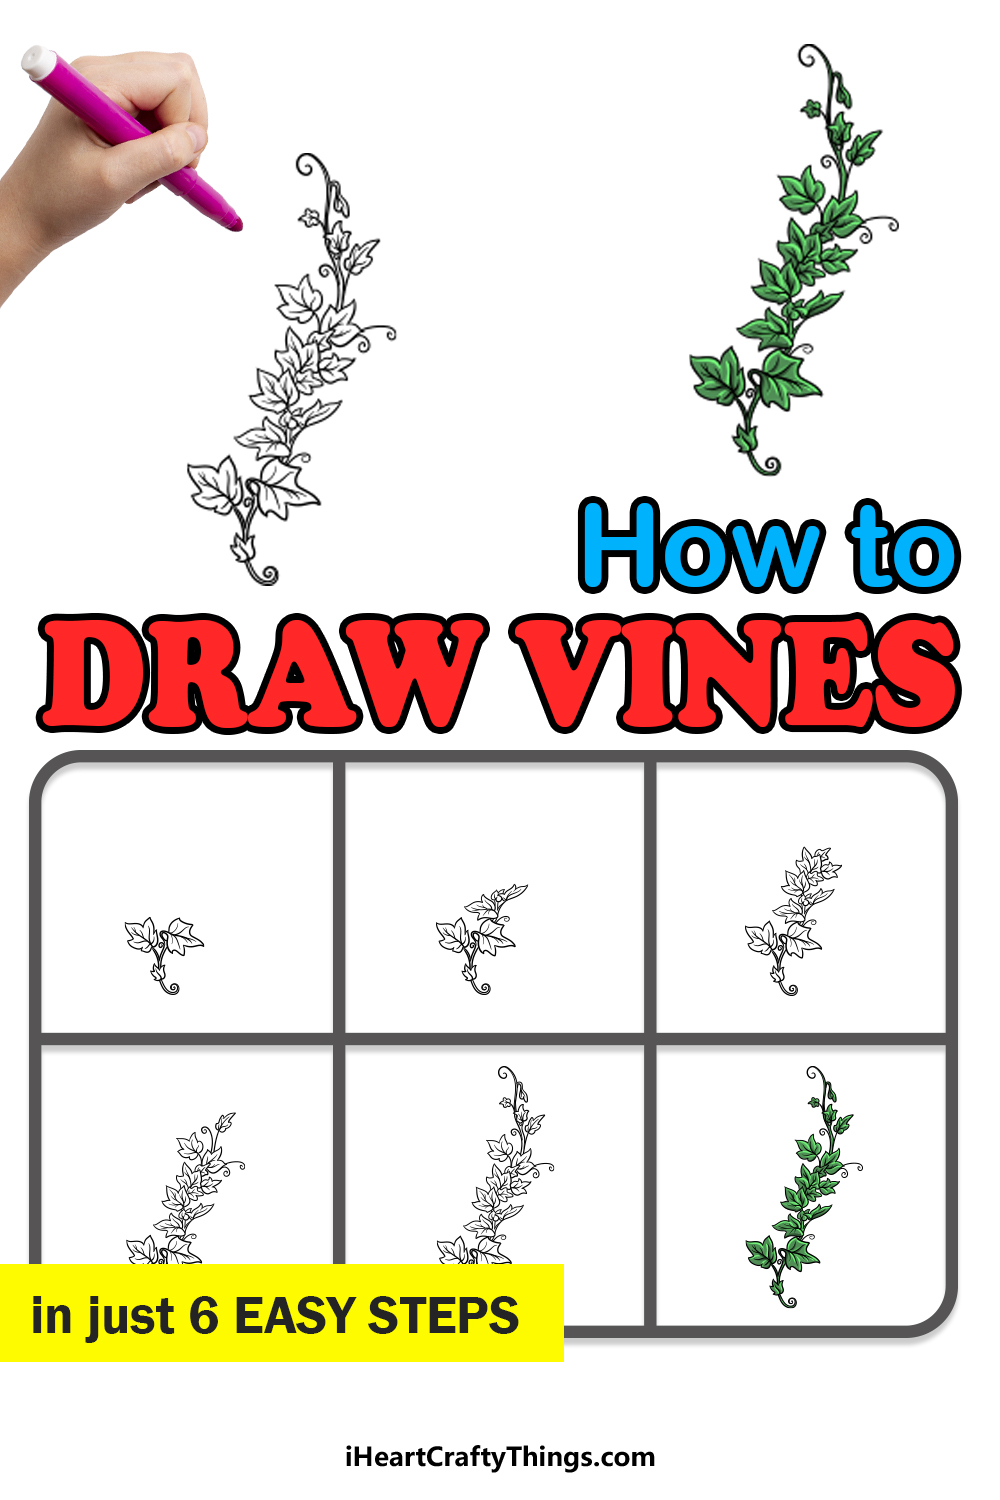 how to draw vines in 6 easy steps